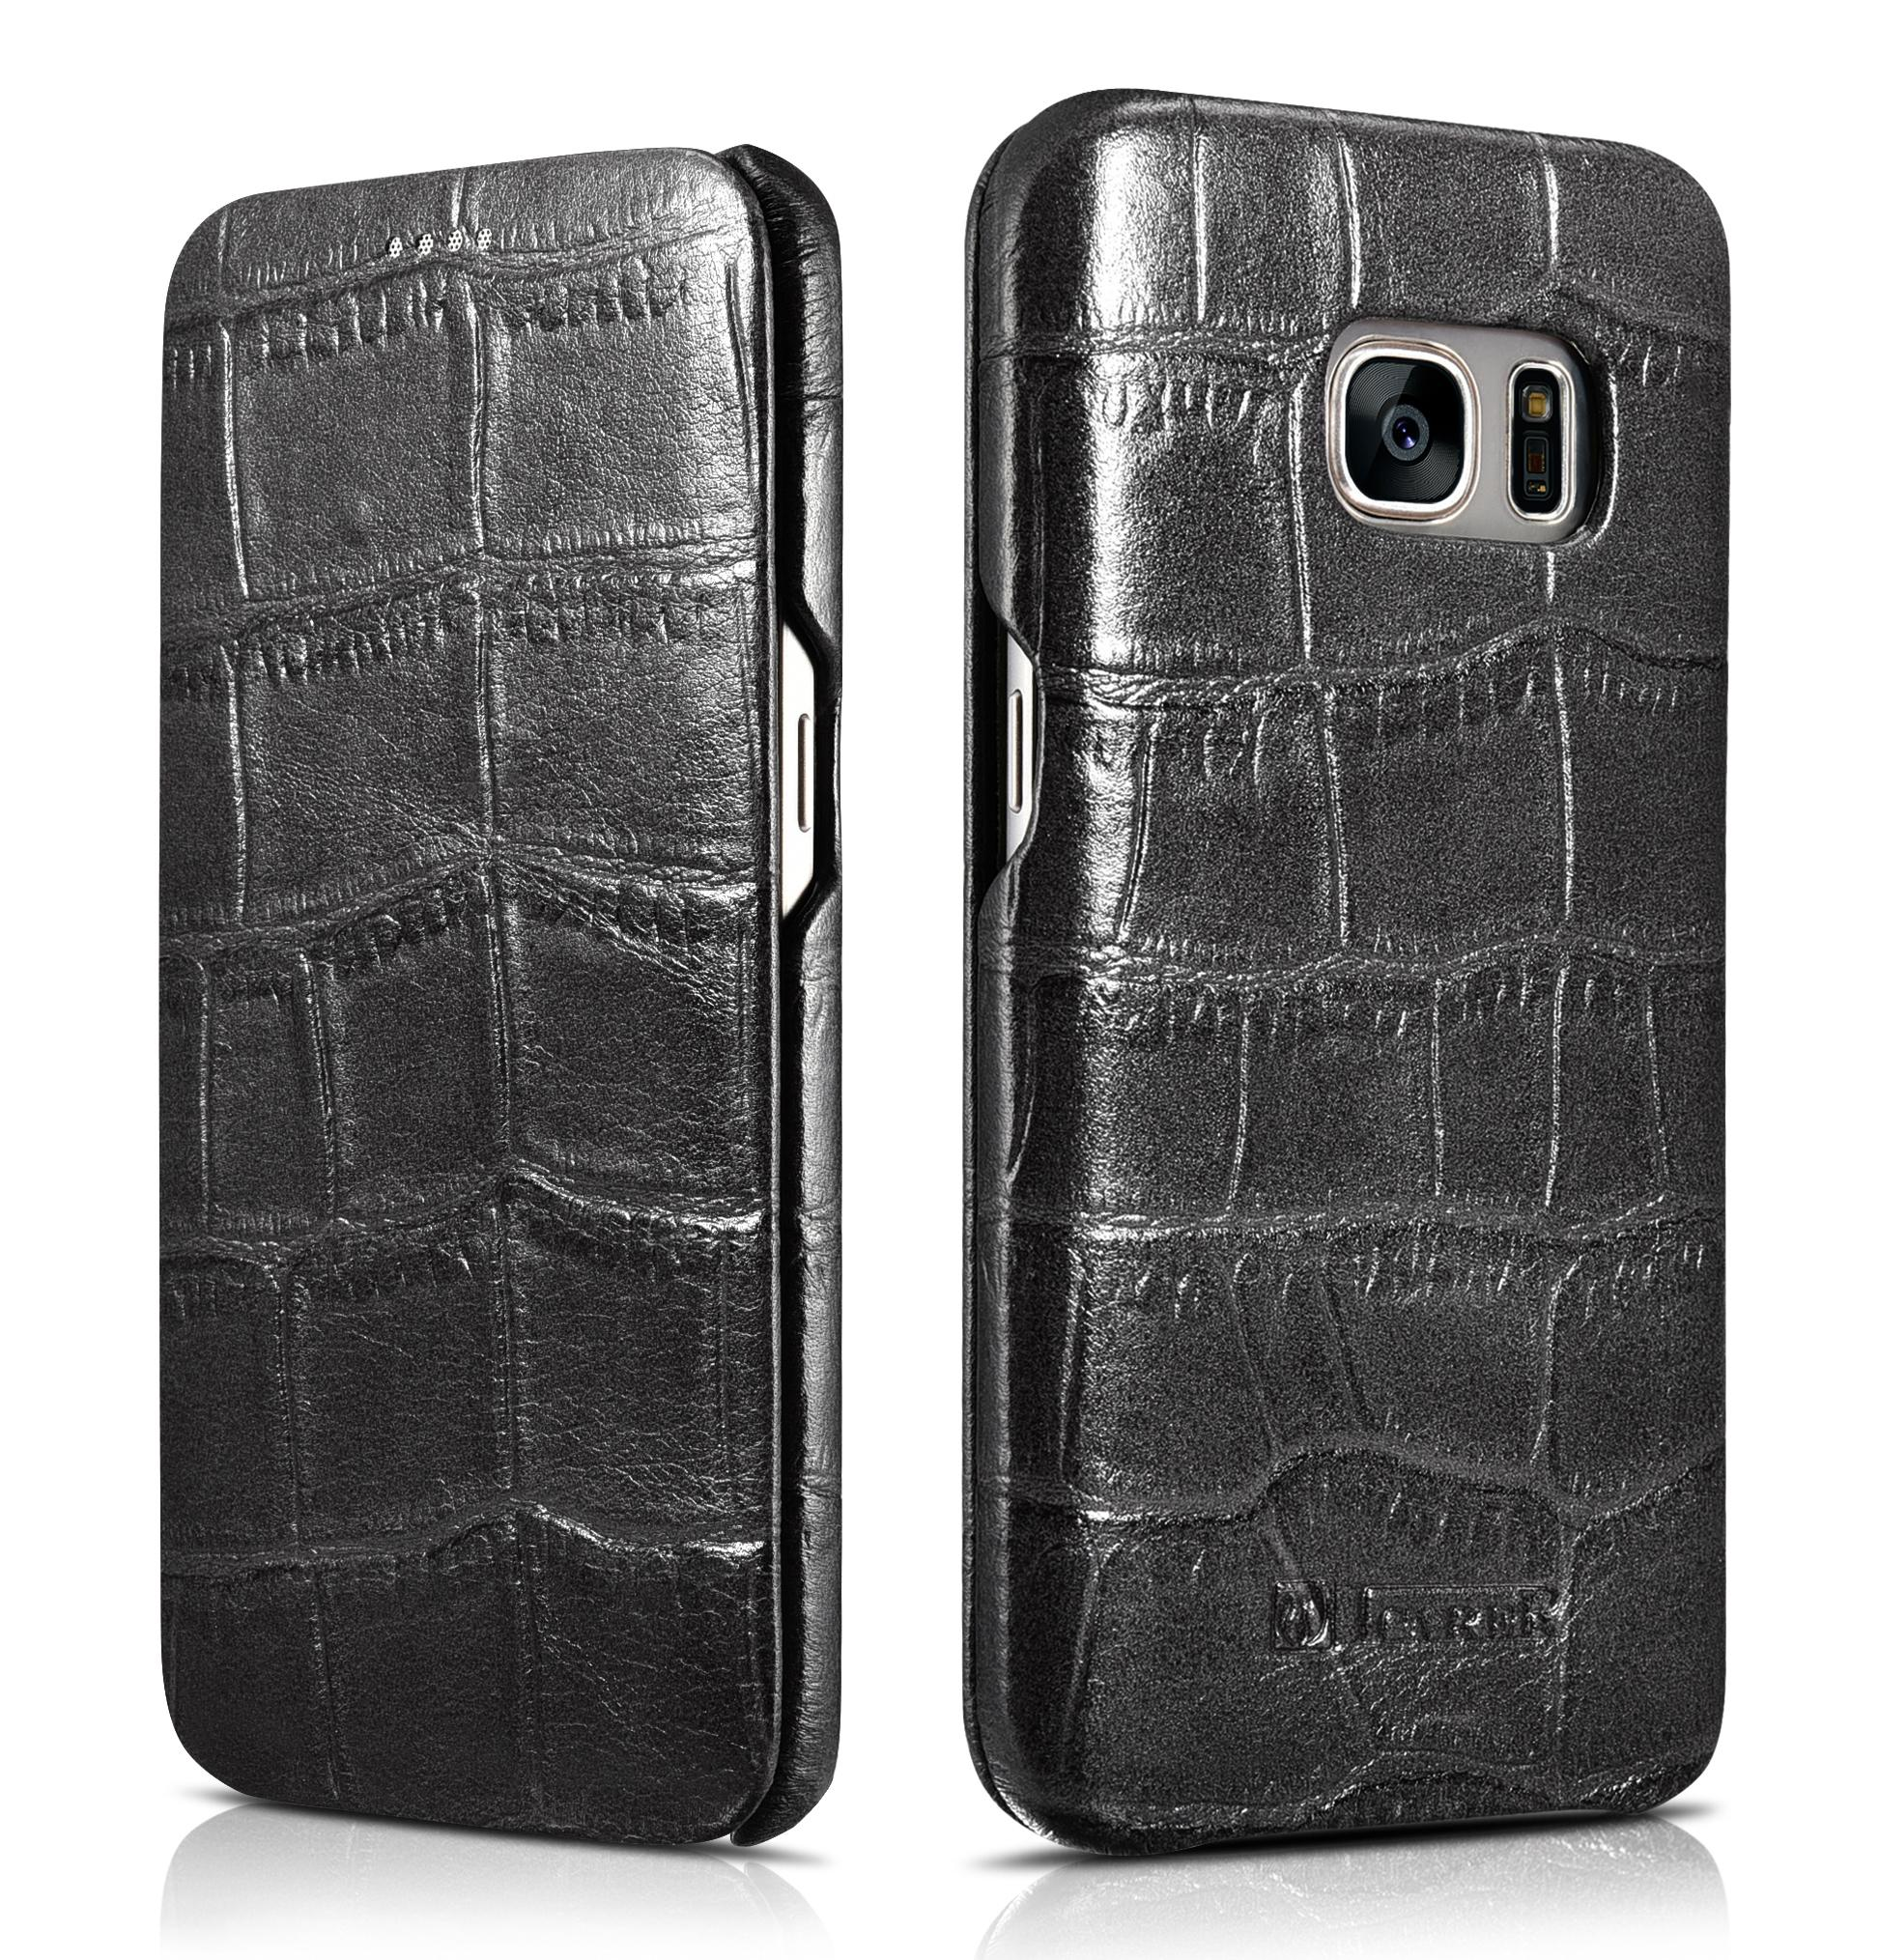 iCarer Samsung Galaxy S7 Embossed Crocodile Genuine Leather Folio Case 1